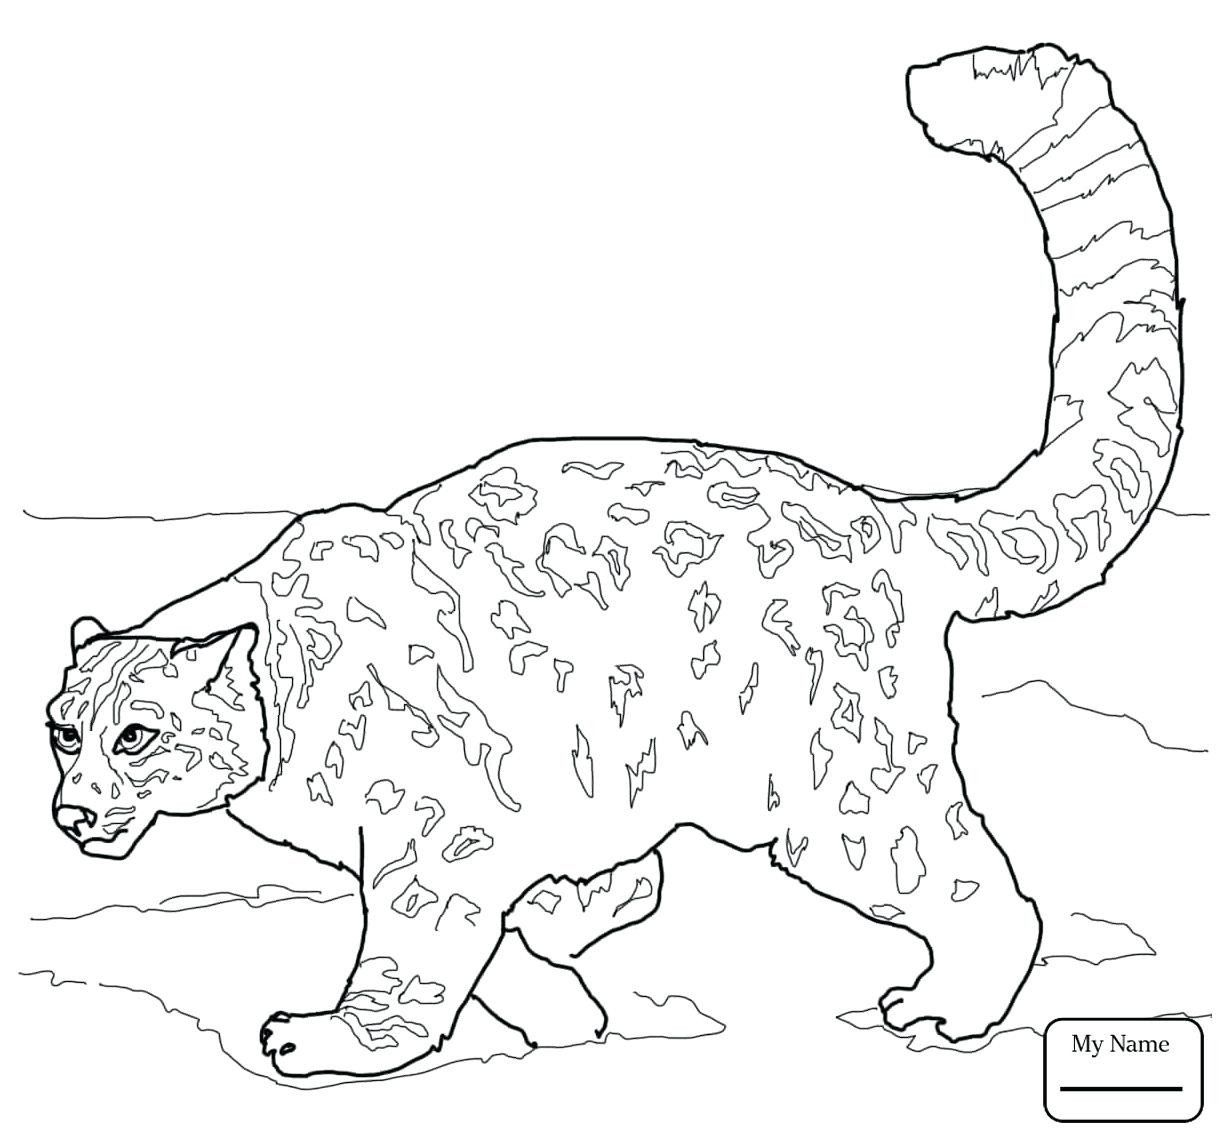 31 Elegant Animal Jam Coloring Pages In 2020 Coloring Pages Free Printable Coloring Pages